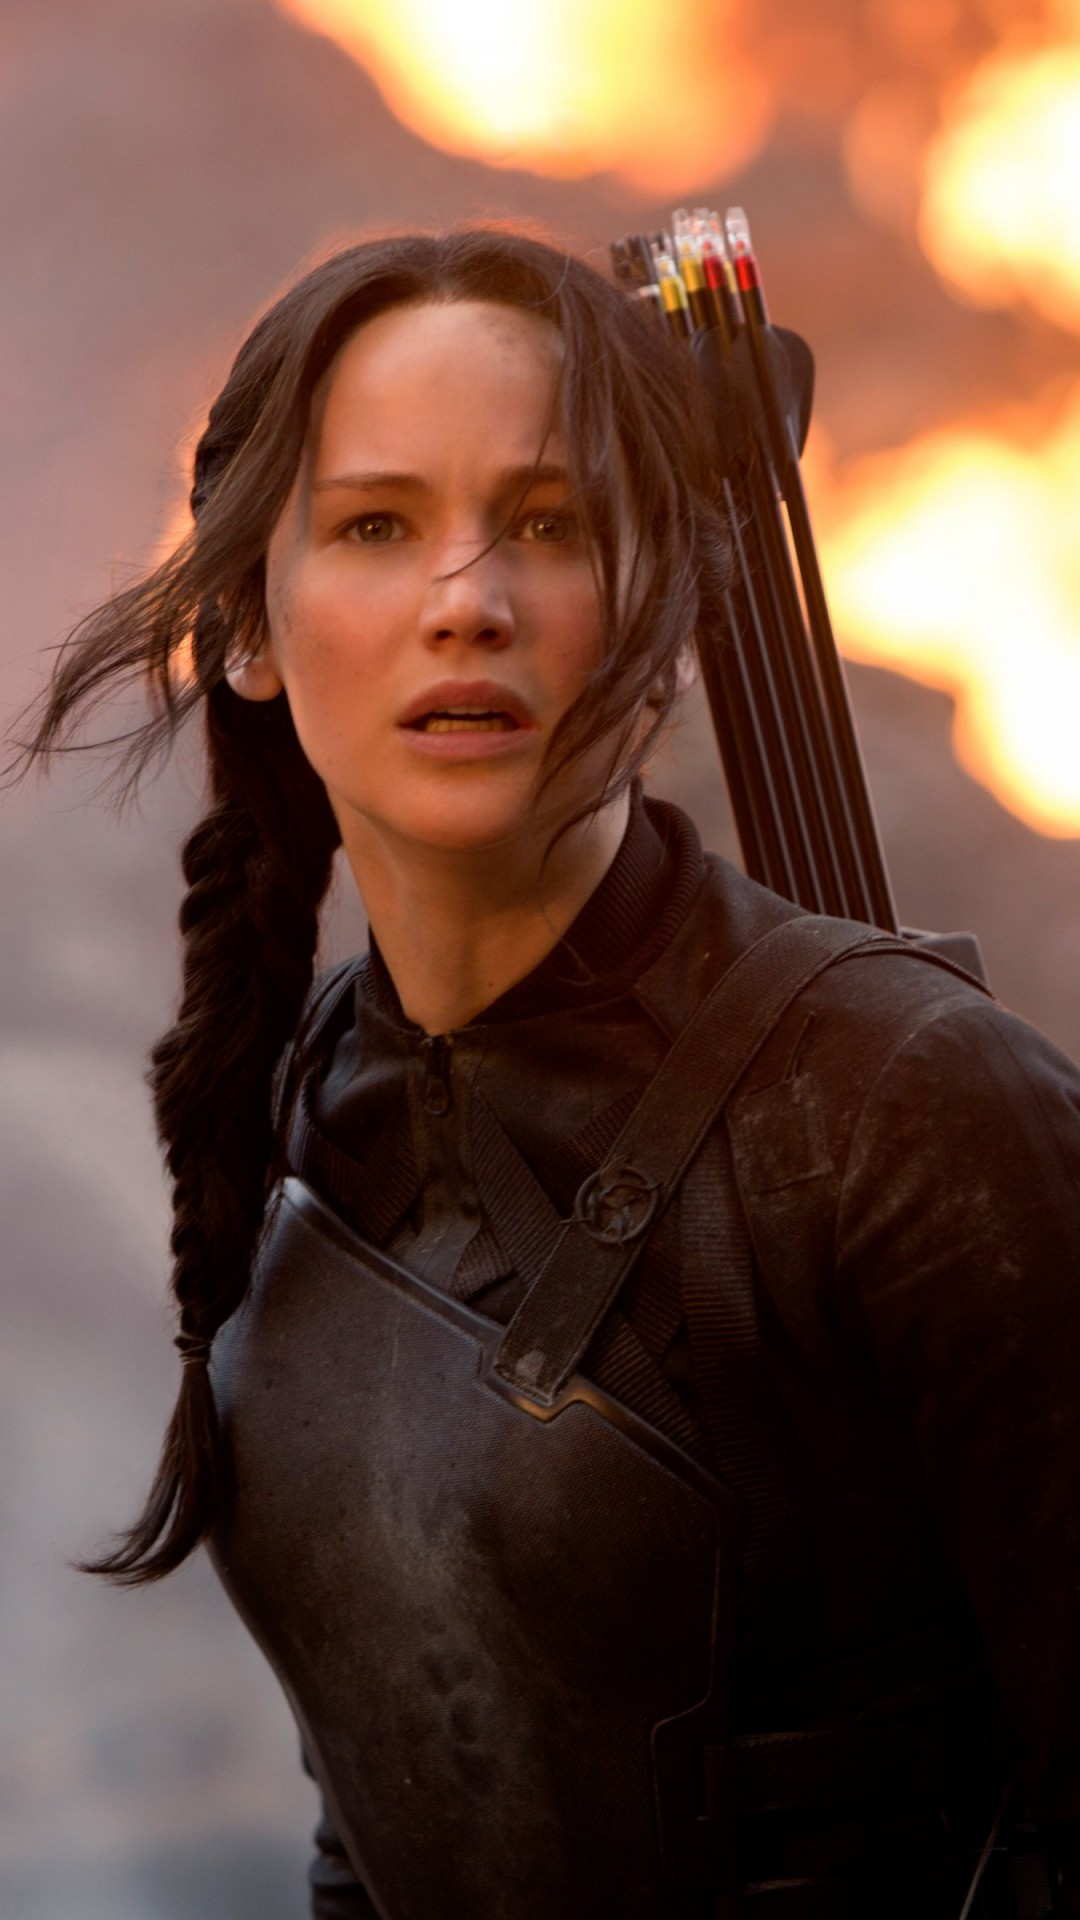 Jennifer Lawrence in The Hunger Games Wallpaper for SONY Xperia Z3